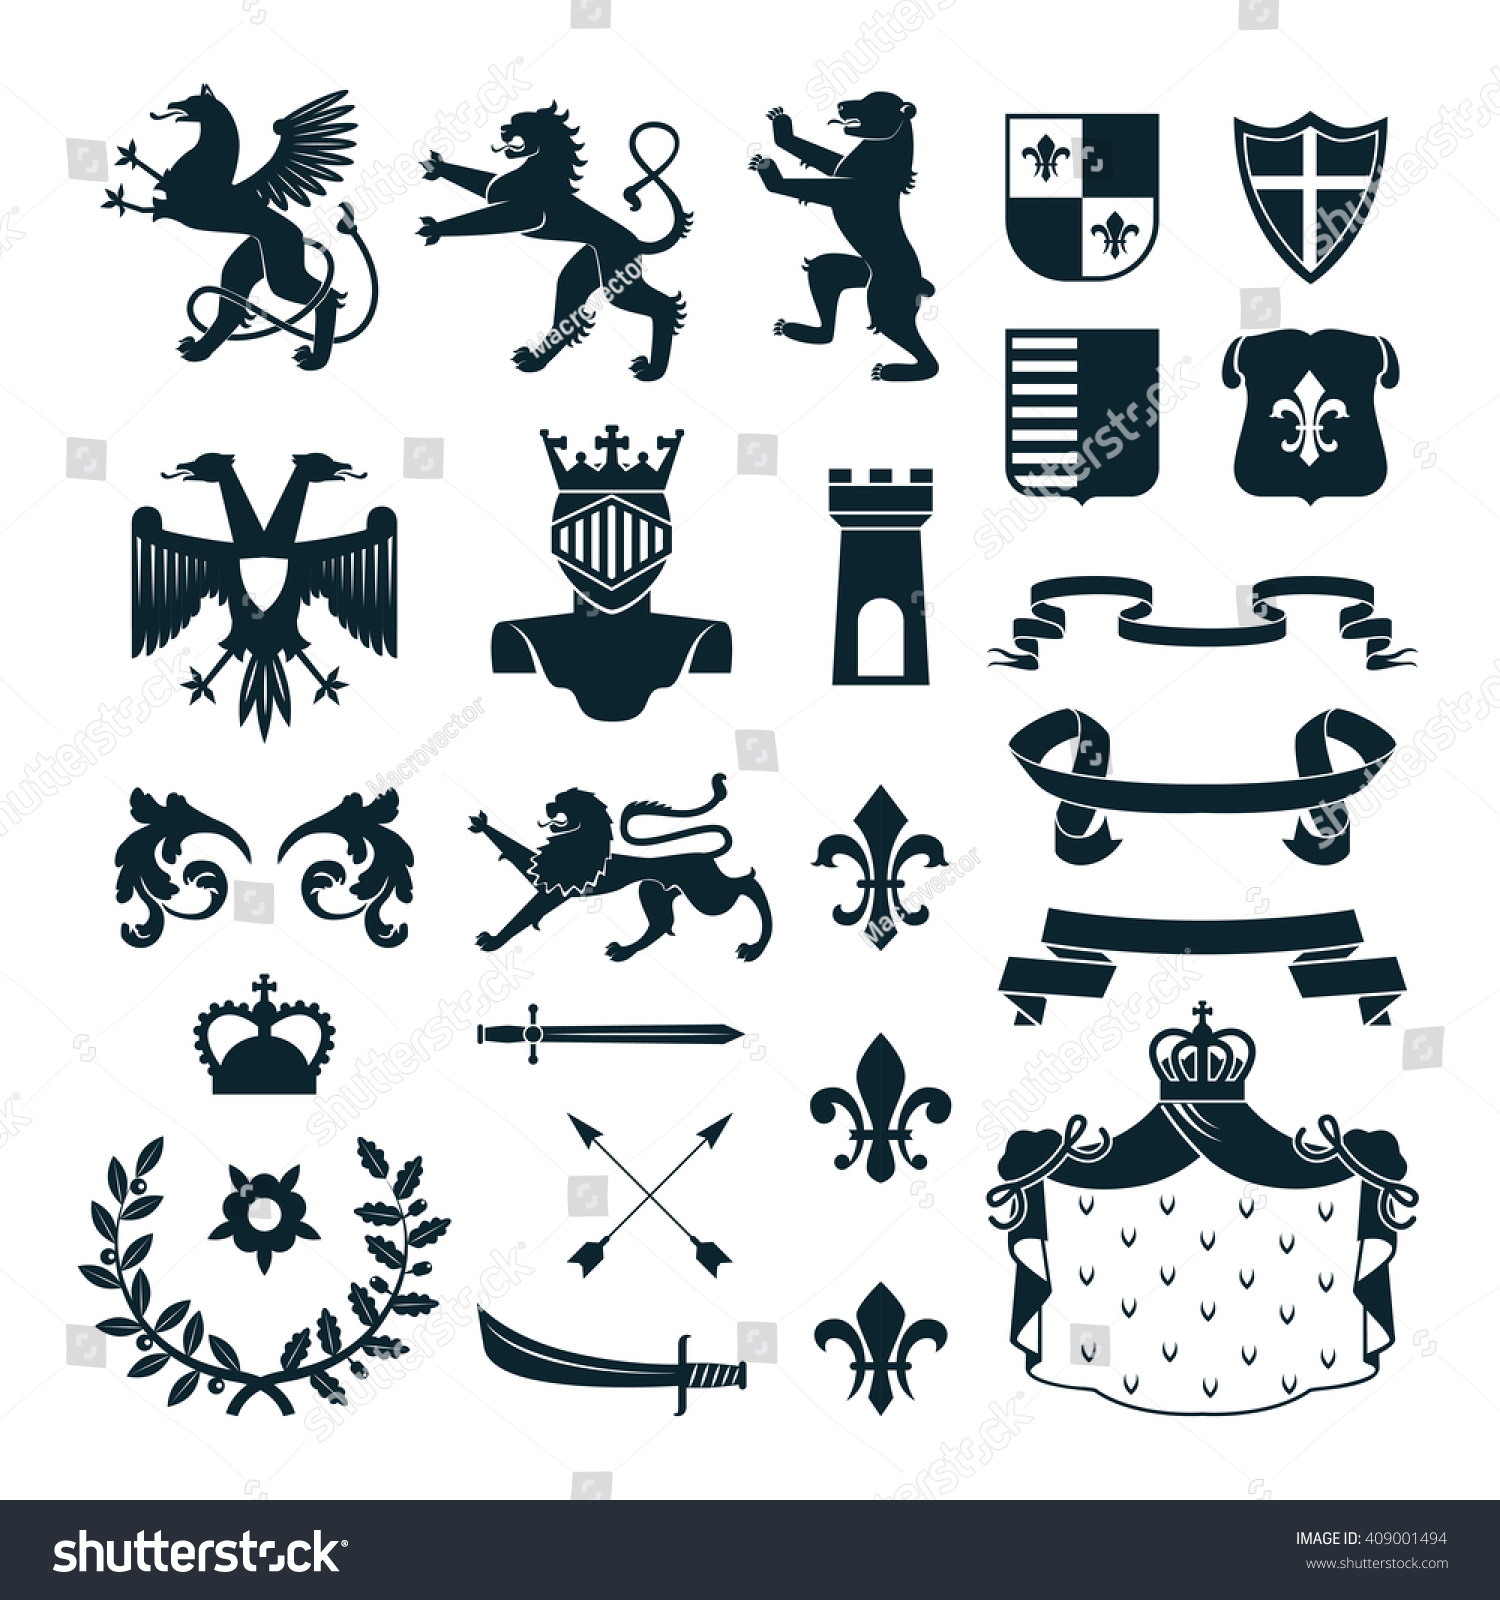 Coat Arms Design Meanings